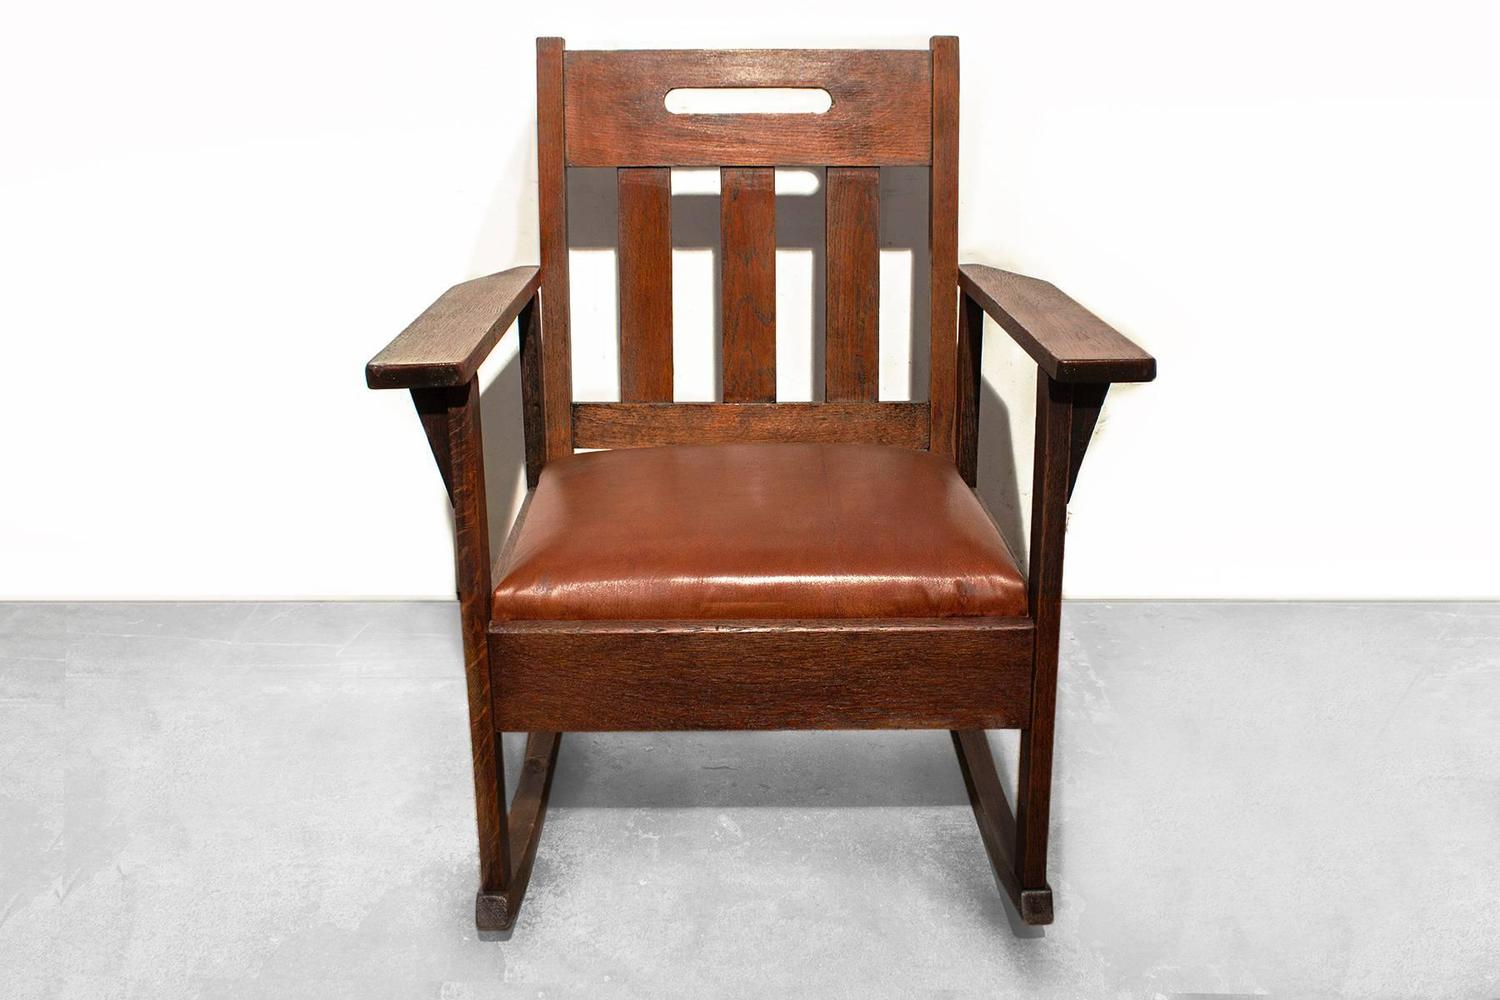 1920s rocking chair swivel chairs under £100 stickley style with brown leather circa